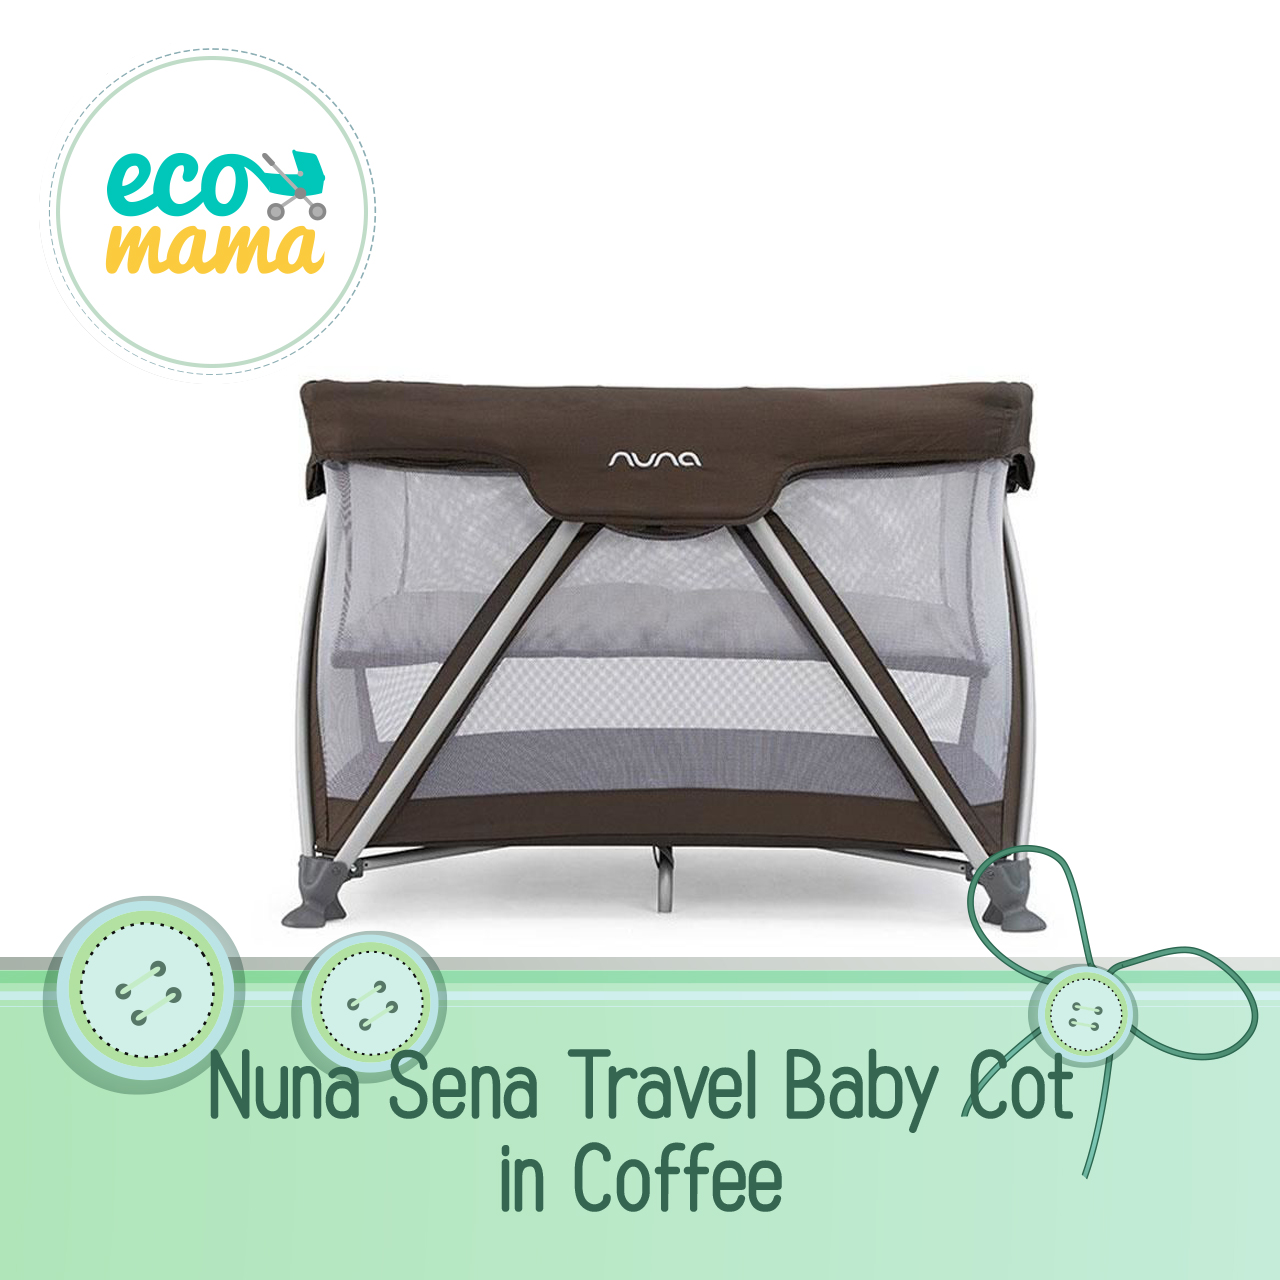 Nuna Sena Travel Crib in Coffee